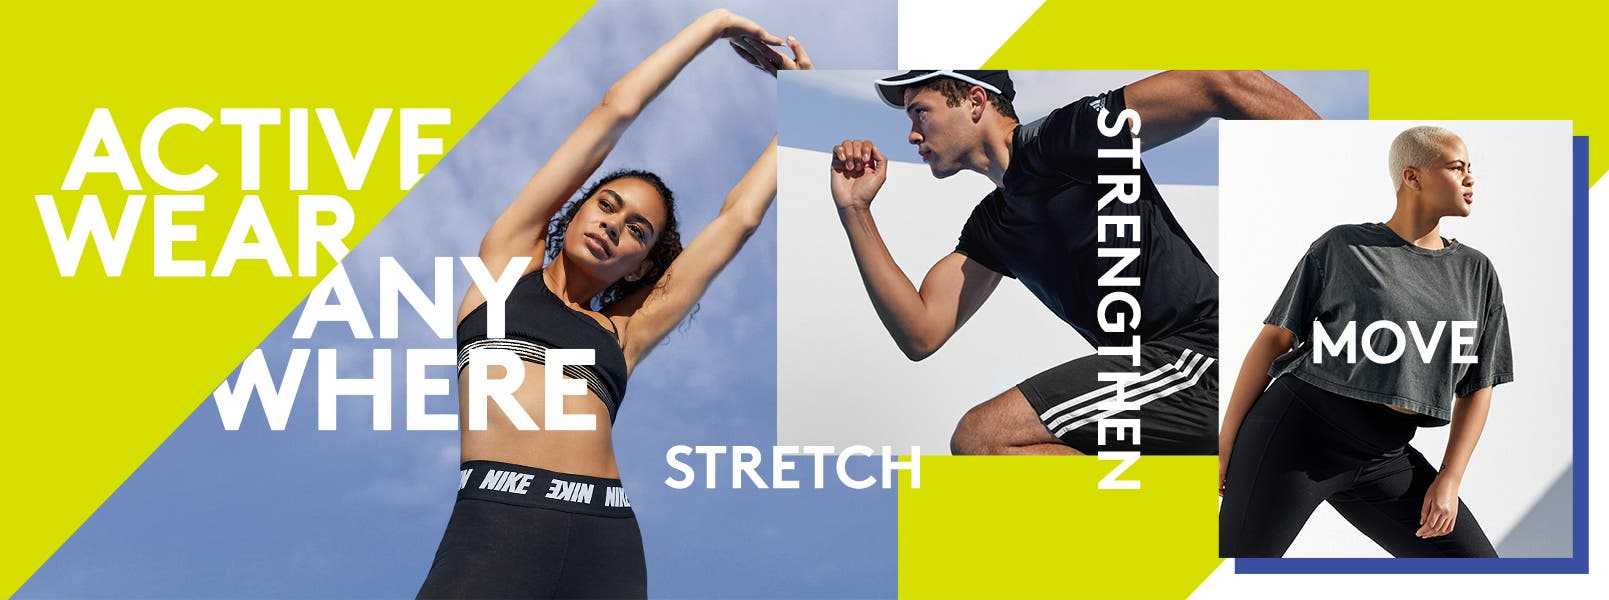 Women and a man working out in activewear for anywhere.